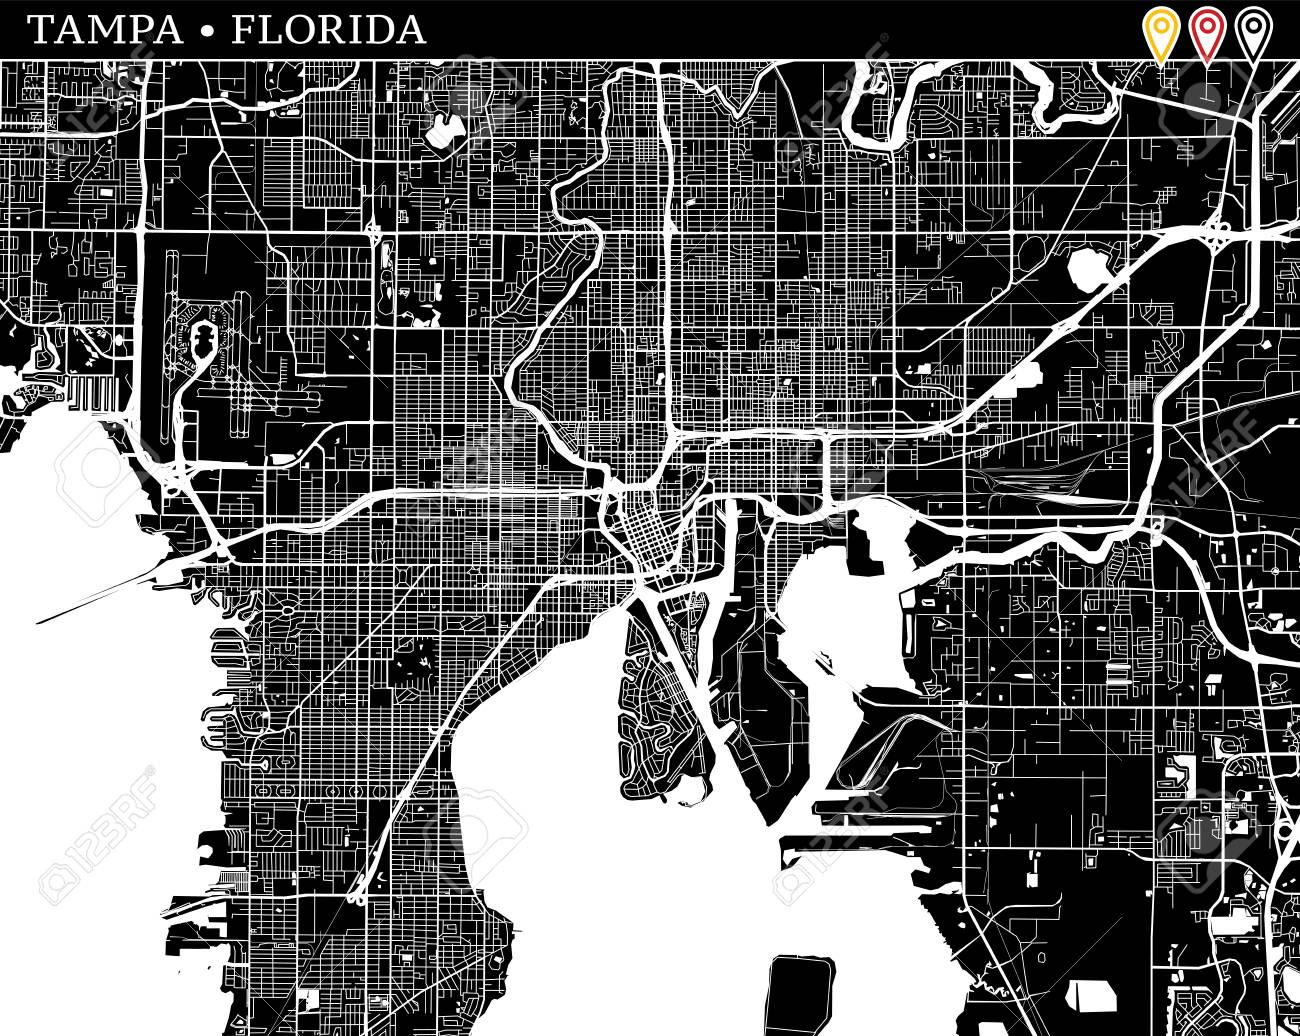 Tampa Florida Usa Map.Simple Map Of Tampa Florida Usa Black And White Version For Clean